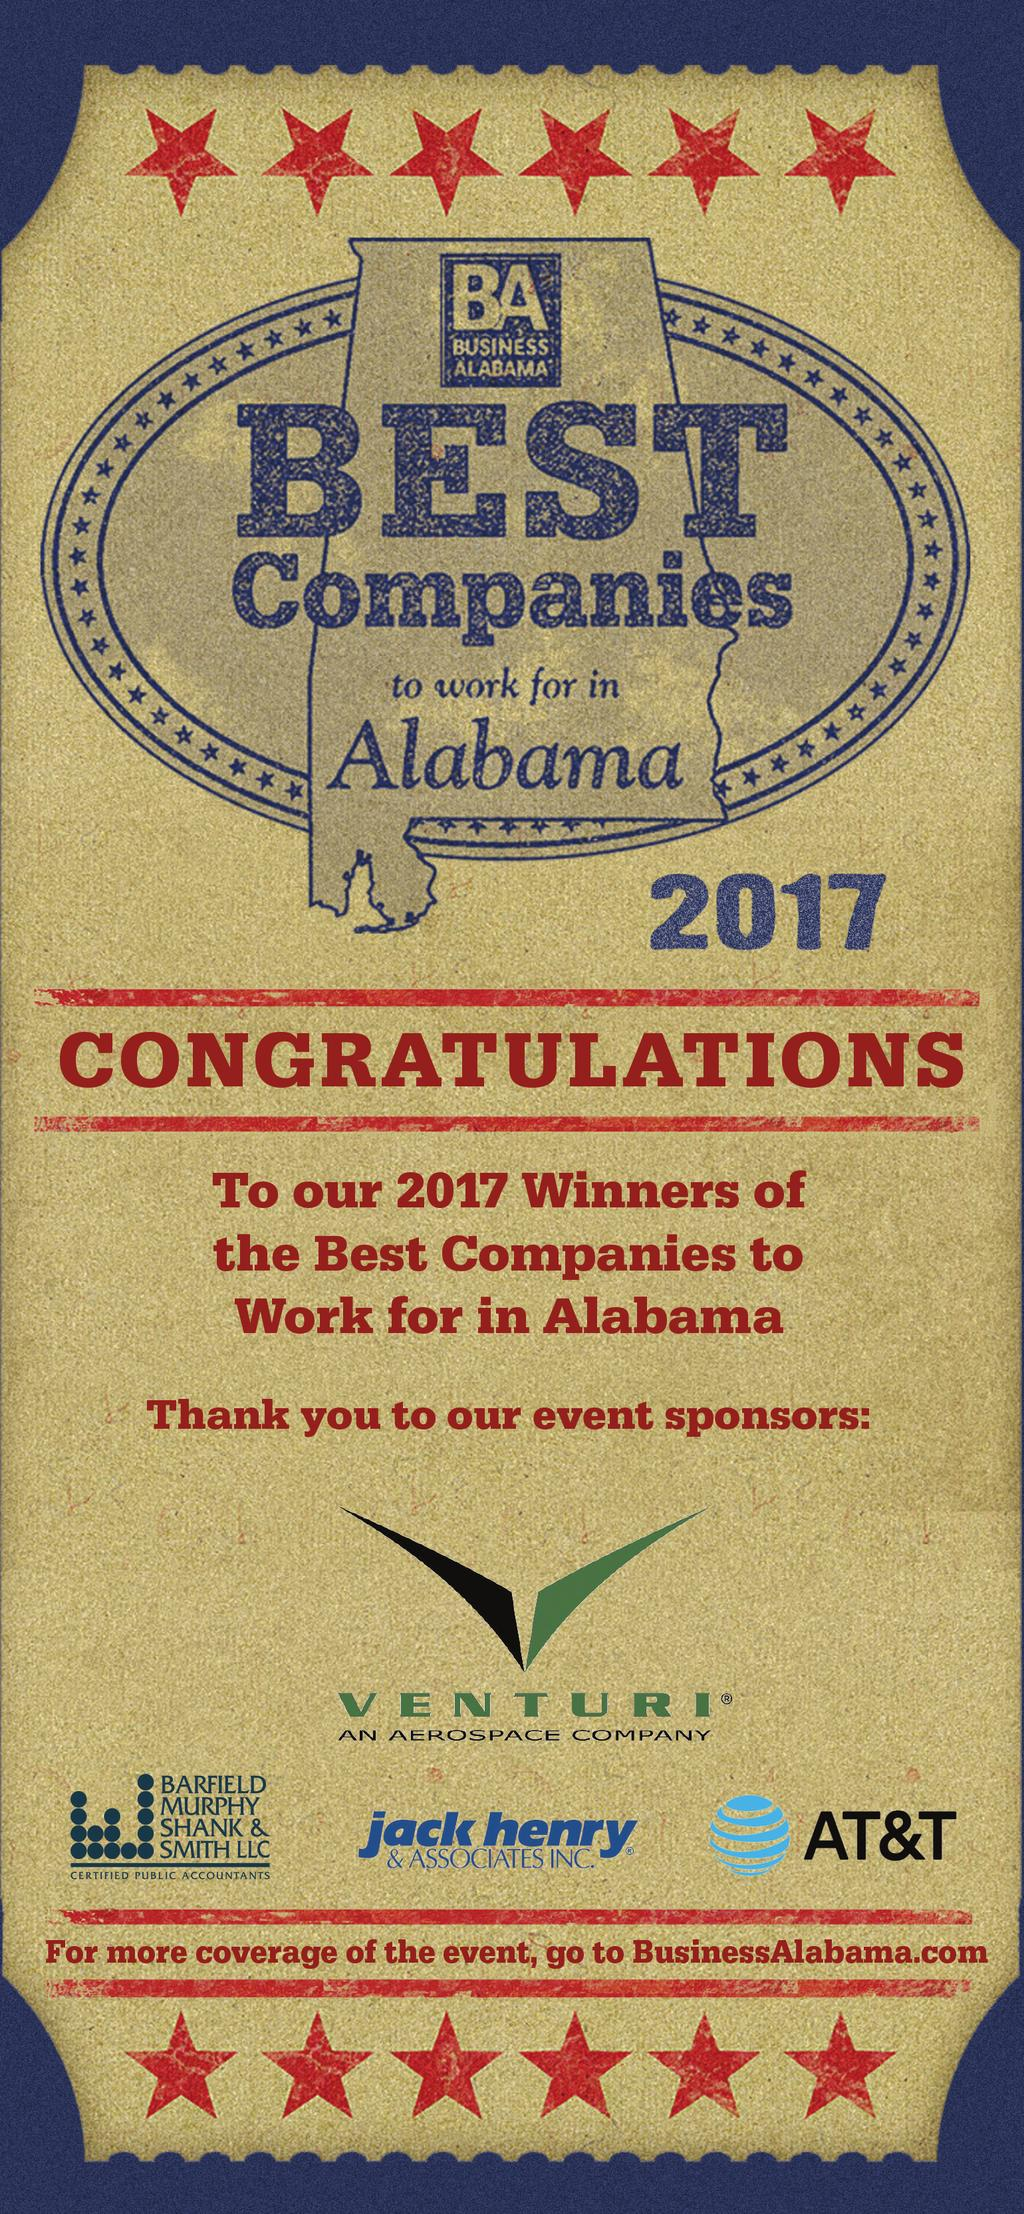 2017 BEST COMPANIES TO WORK FOR IN ALABAMA - PDF Free Download